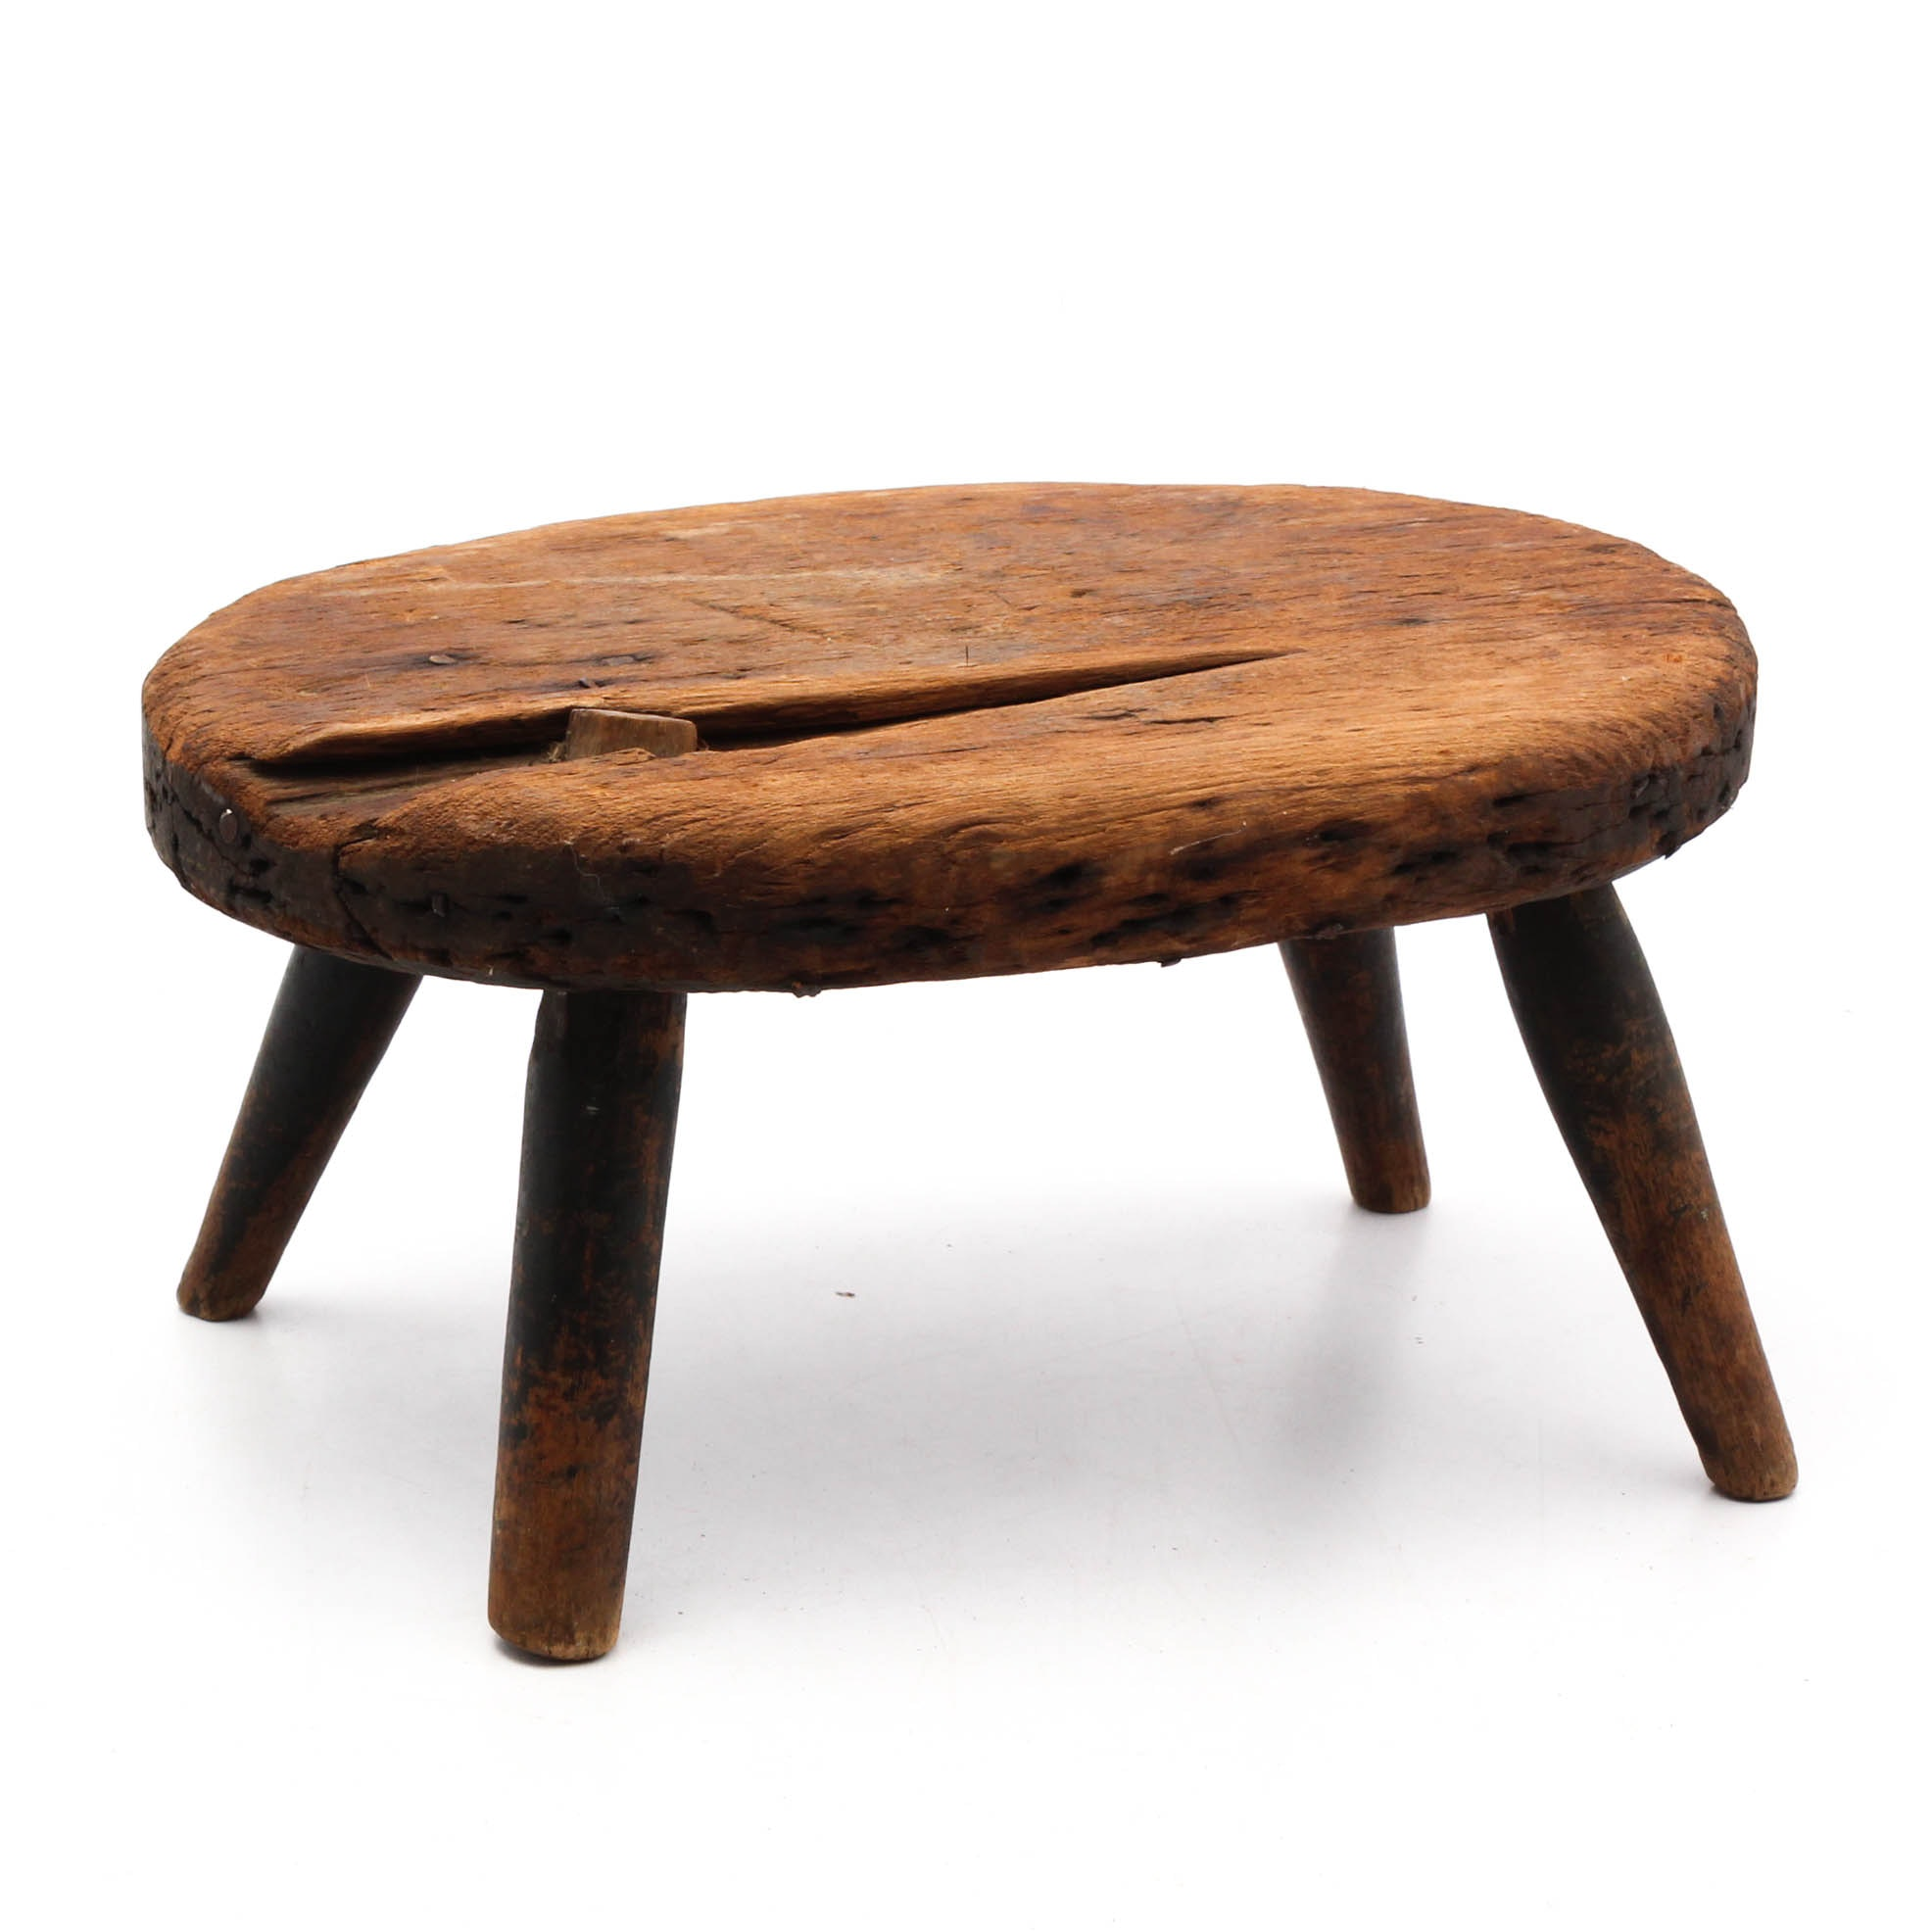 Antique Wooden Milking Stool, Late 19th Century